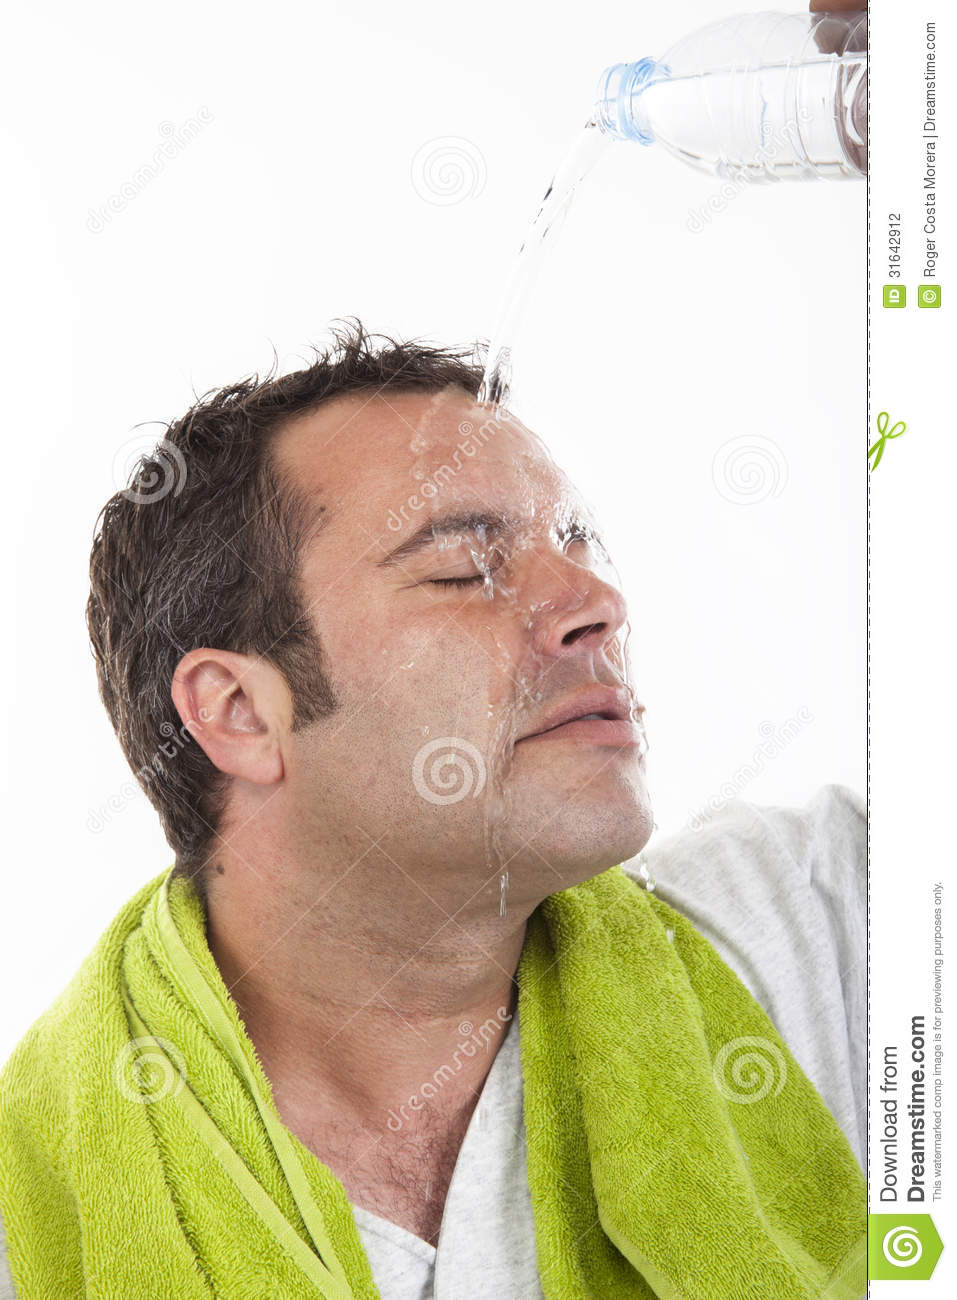 Man pouring water on himself to <b>cool down</b> after after sports - man-pouring-water-himself-to-cool-down-sports-male-fitness-concept-31642912